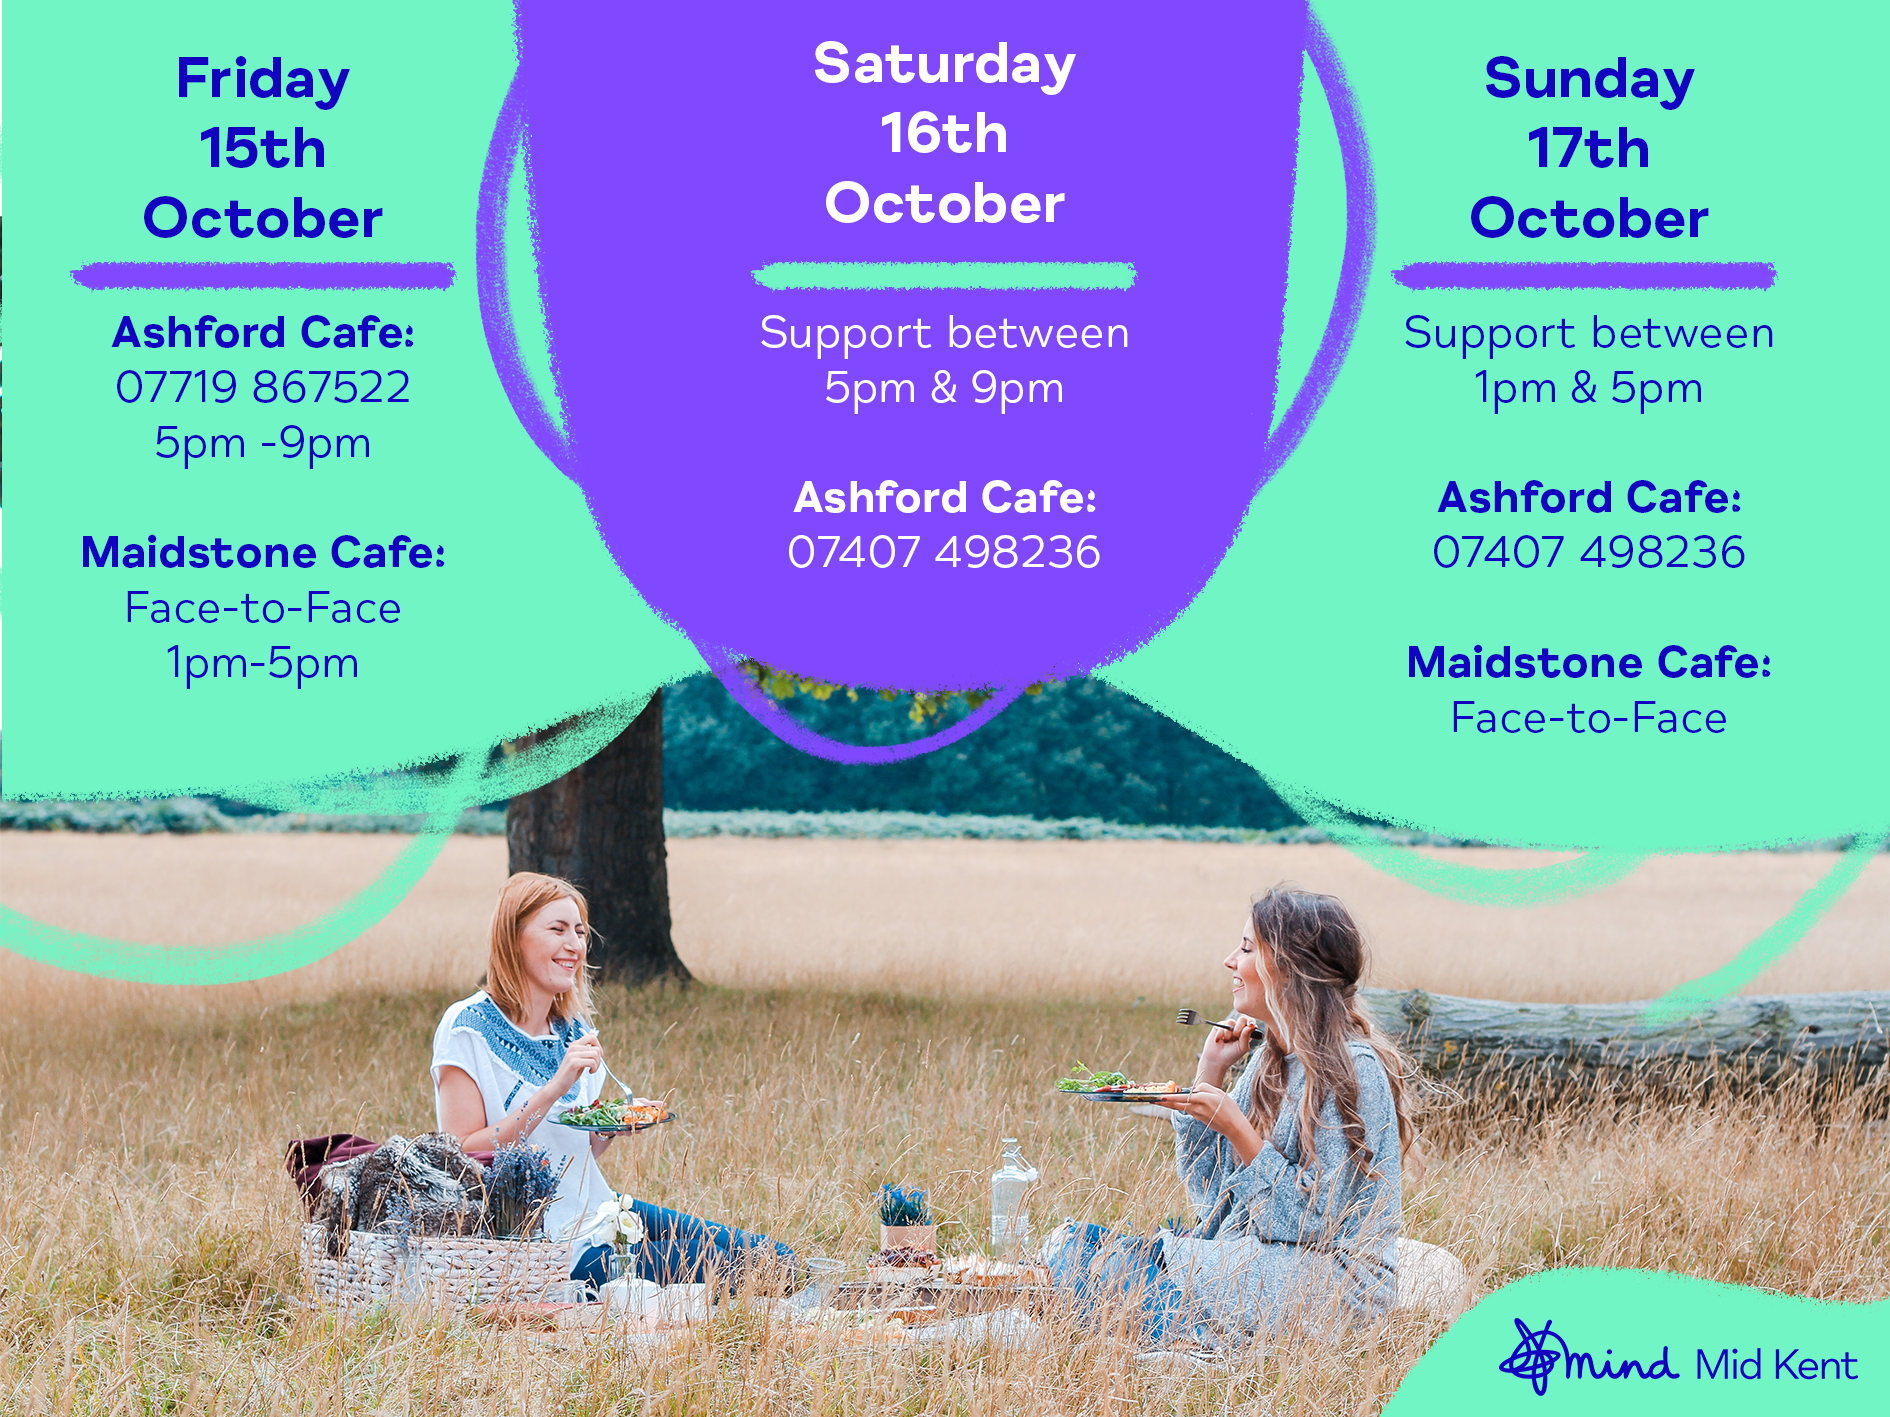 Friday 15th October. Ashford Cafe: 07719 867522. 5pm - 9pm. Maidstone Cafe. Face-to-Face 1pm - 5pm. Saturday 16th October. Support between 5pm & 9pm. Ashford Cafe 07407 498236. Sunday 17th October. Support between 1pm & 5pm. Ashford Cafe: 07407 498236. Maidstone Cafe: Face-to-face.